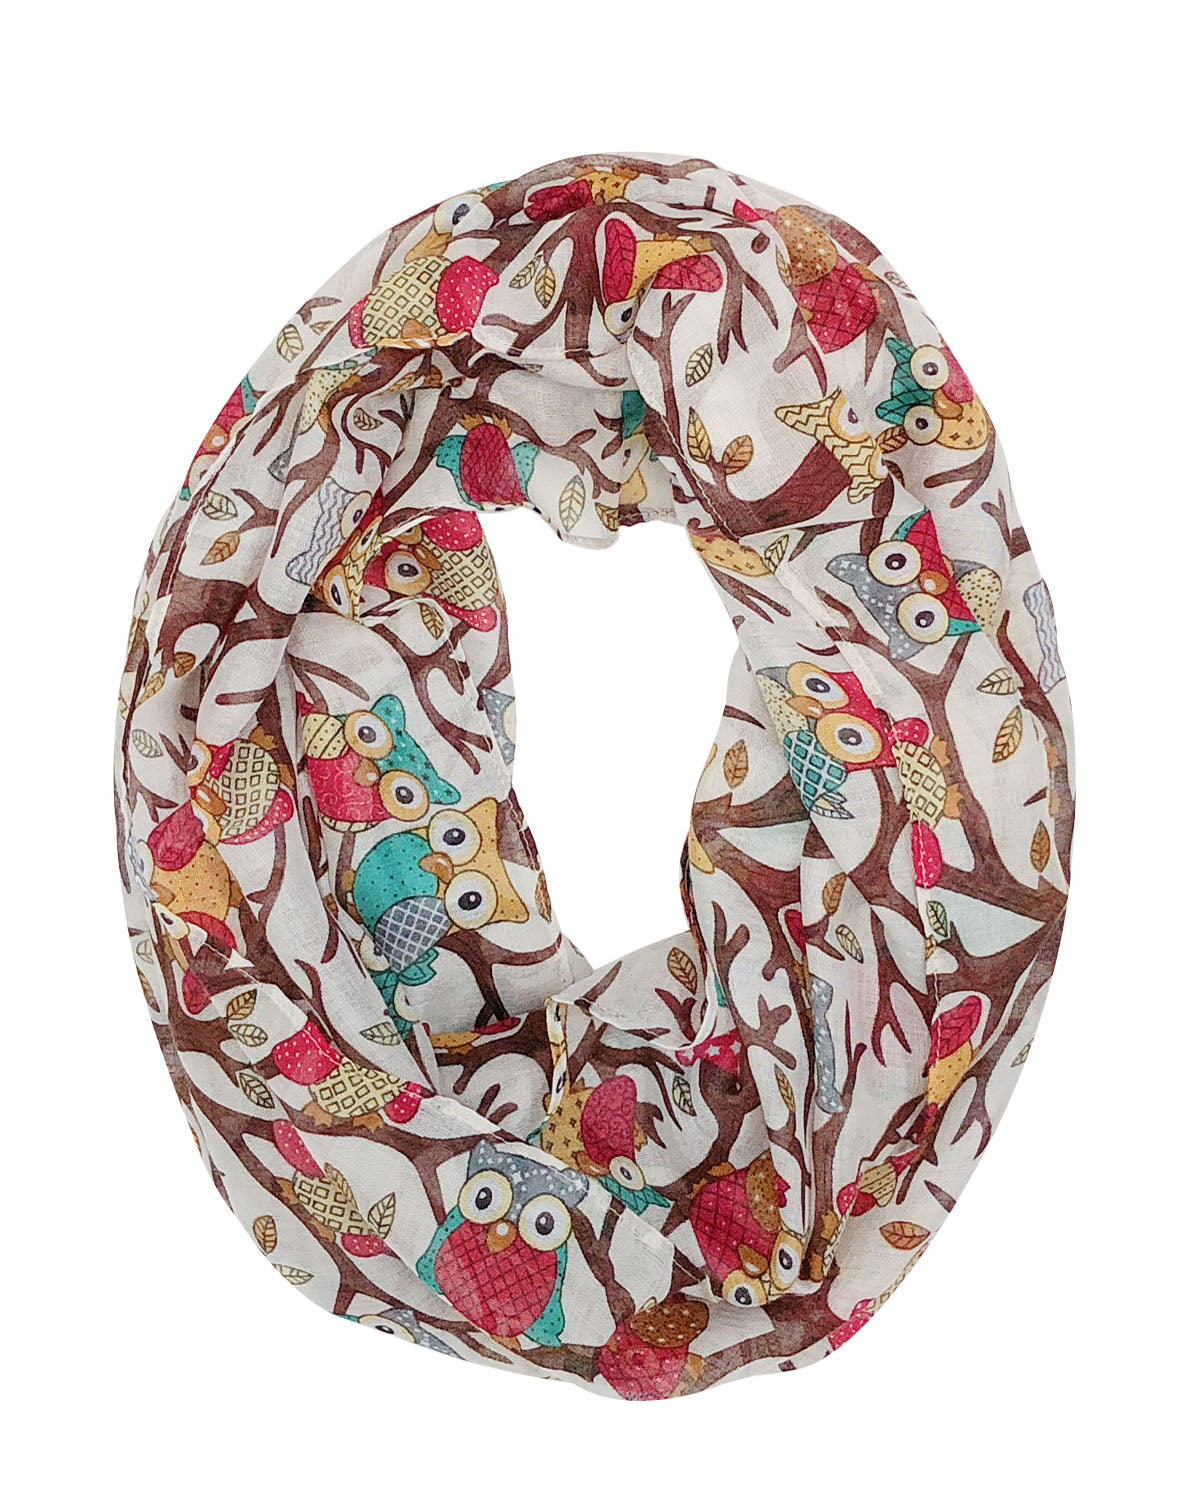 Wrapables Lightweight Forest Animal Infinity Scarf, Fox, Owl, Moose Print Scarf